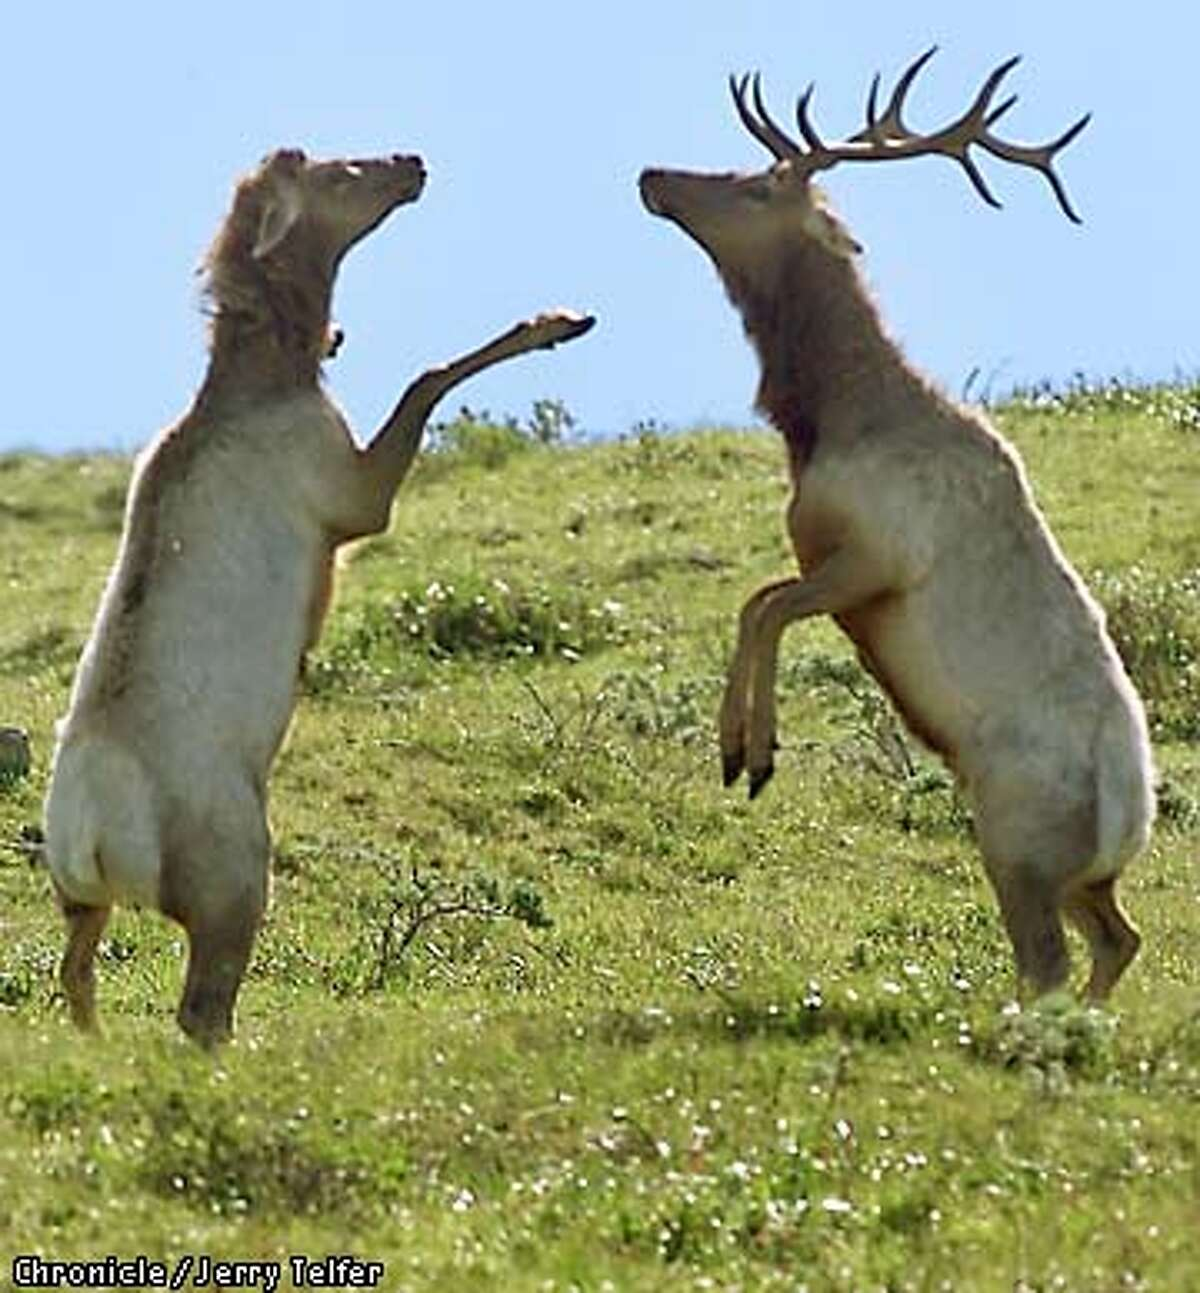 Nearing the end of rutting season, a pair of bull tule elk engage in a bit of boxing with their hooves. (terminology correct, per park biologists). Tule elk shed their antlers each year, as have the two at left. Tule elk are proliferating in their reserve at the north end of Point Reyes National Seashore. CHRONICLE STAFF PHOTO BY JERRY TELFER